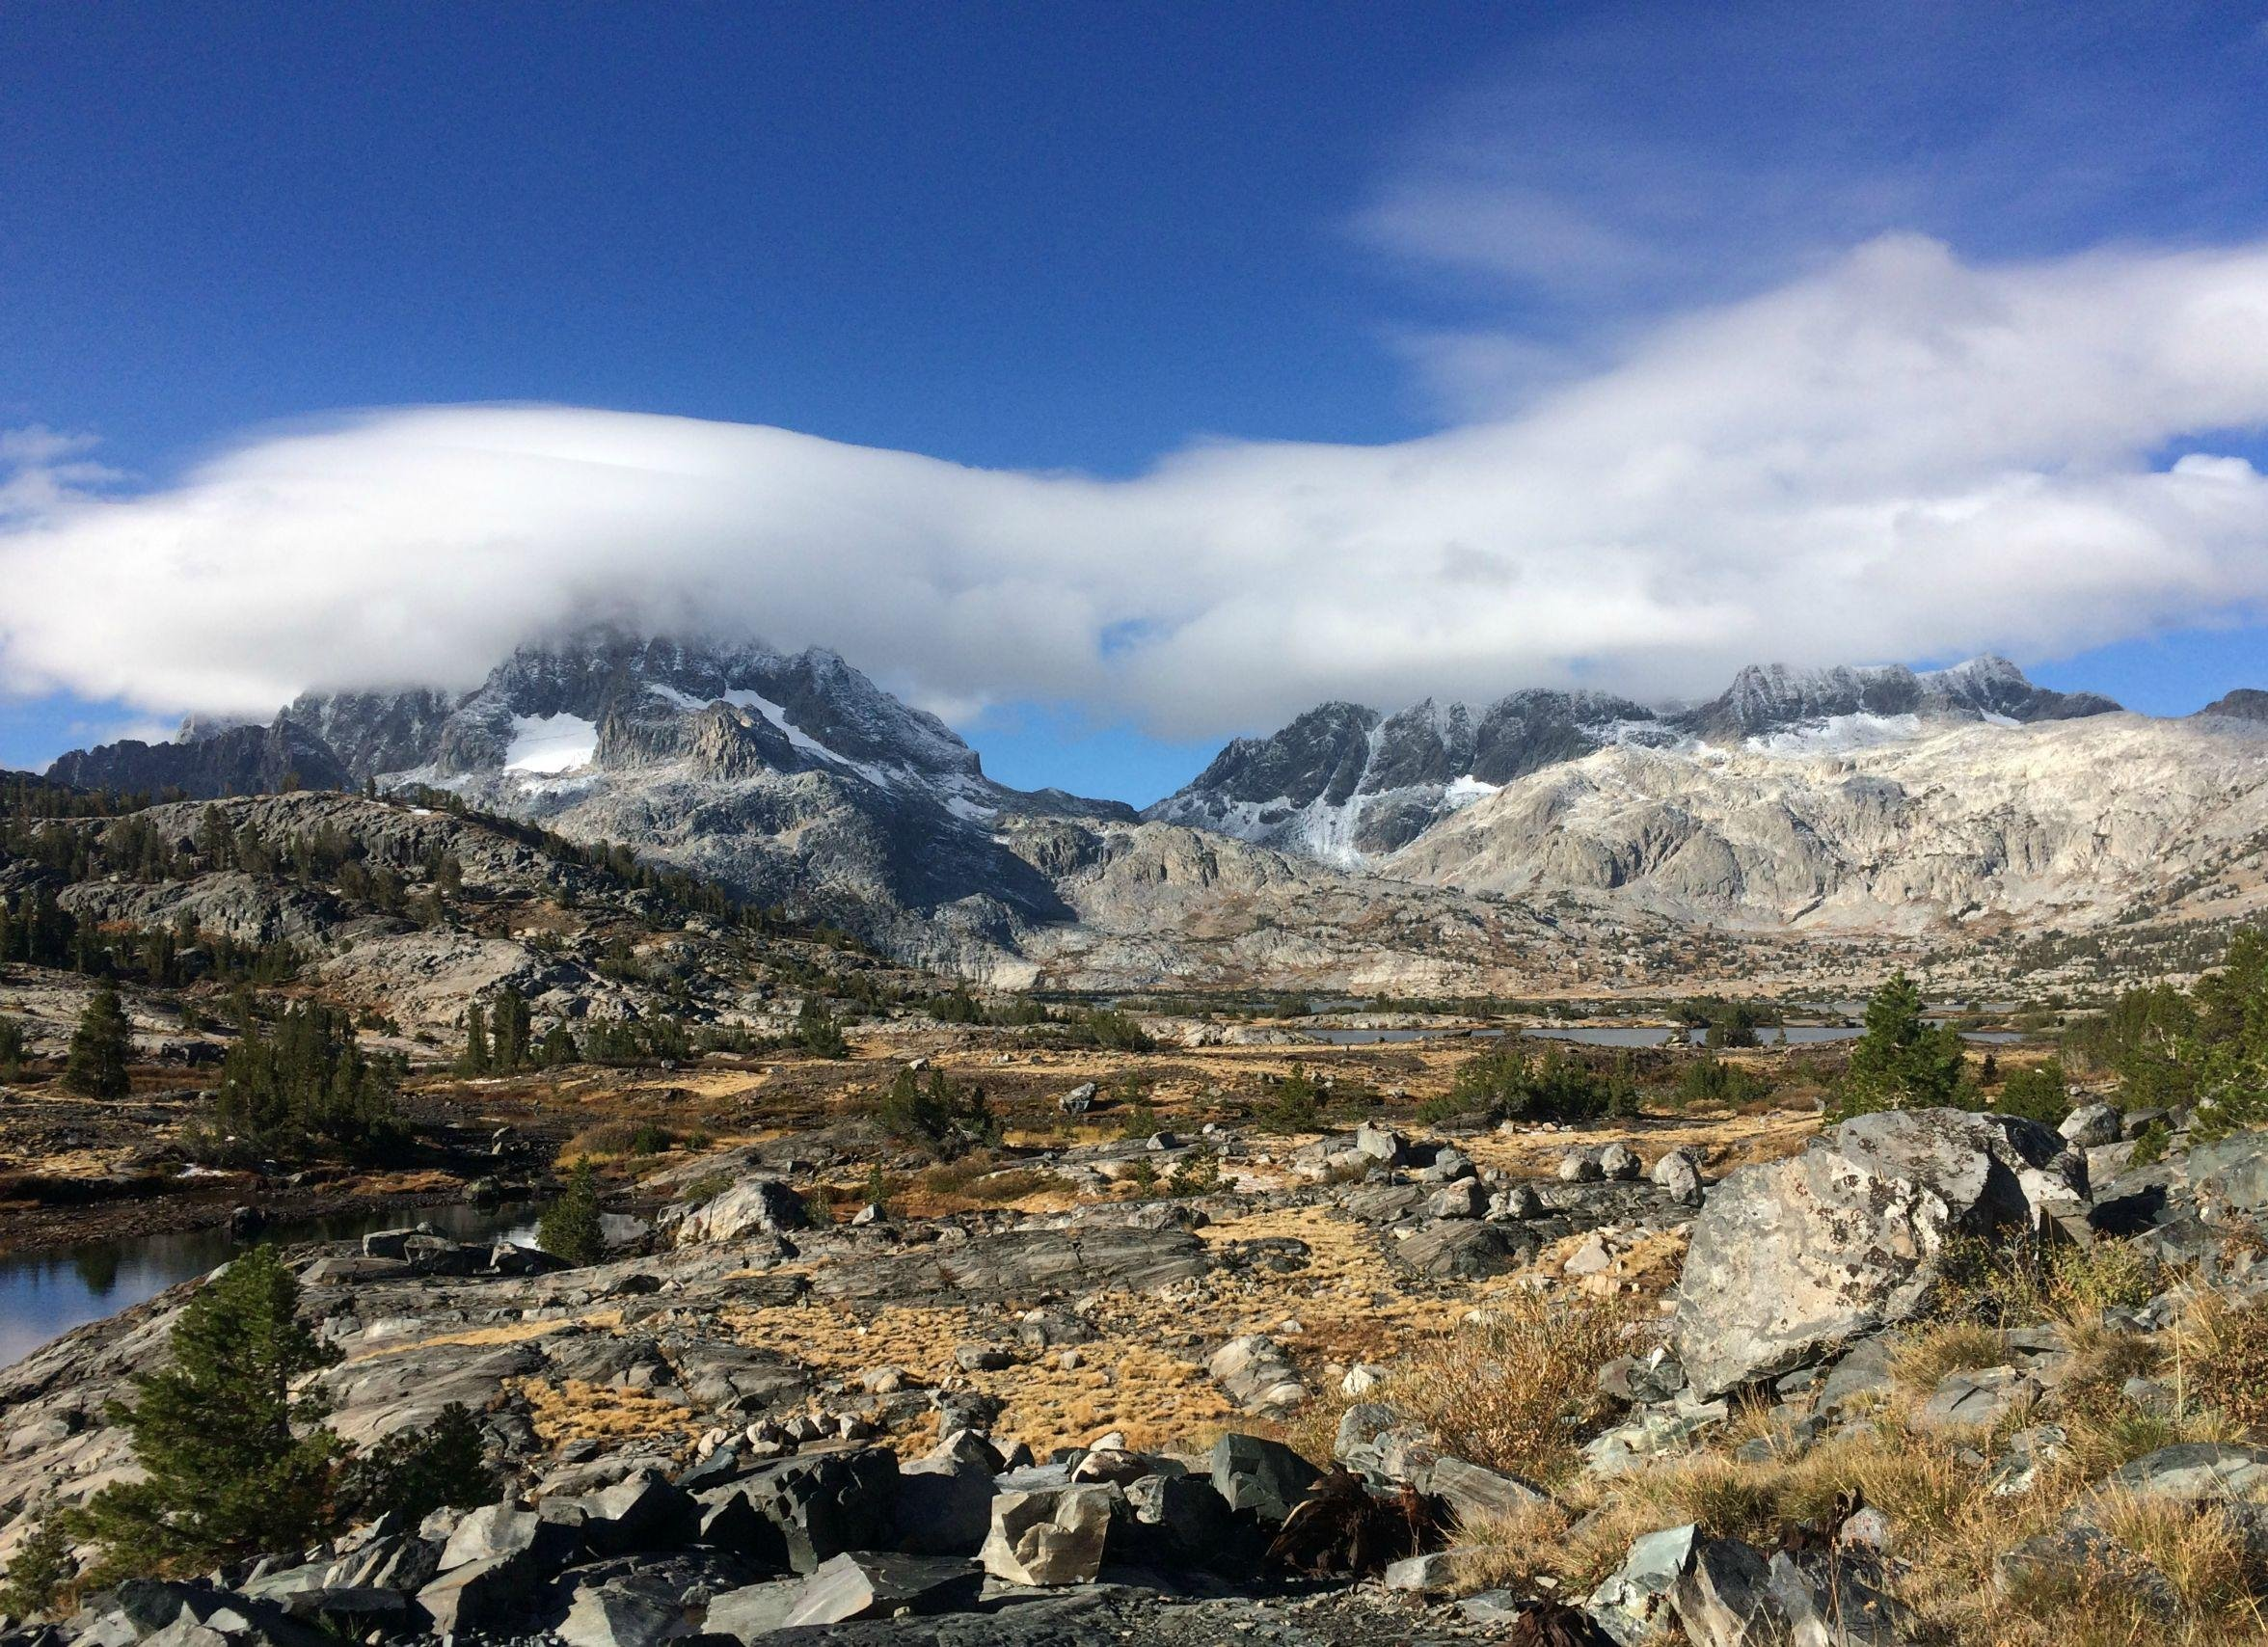 Download iOS 7 Wallpapers For iPhone, iPad and iPod Touchs · Ansel Adams ...